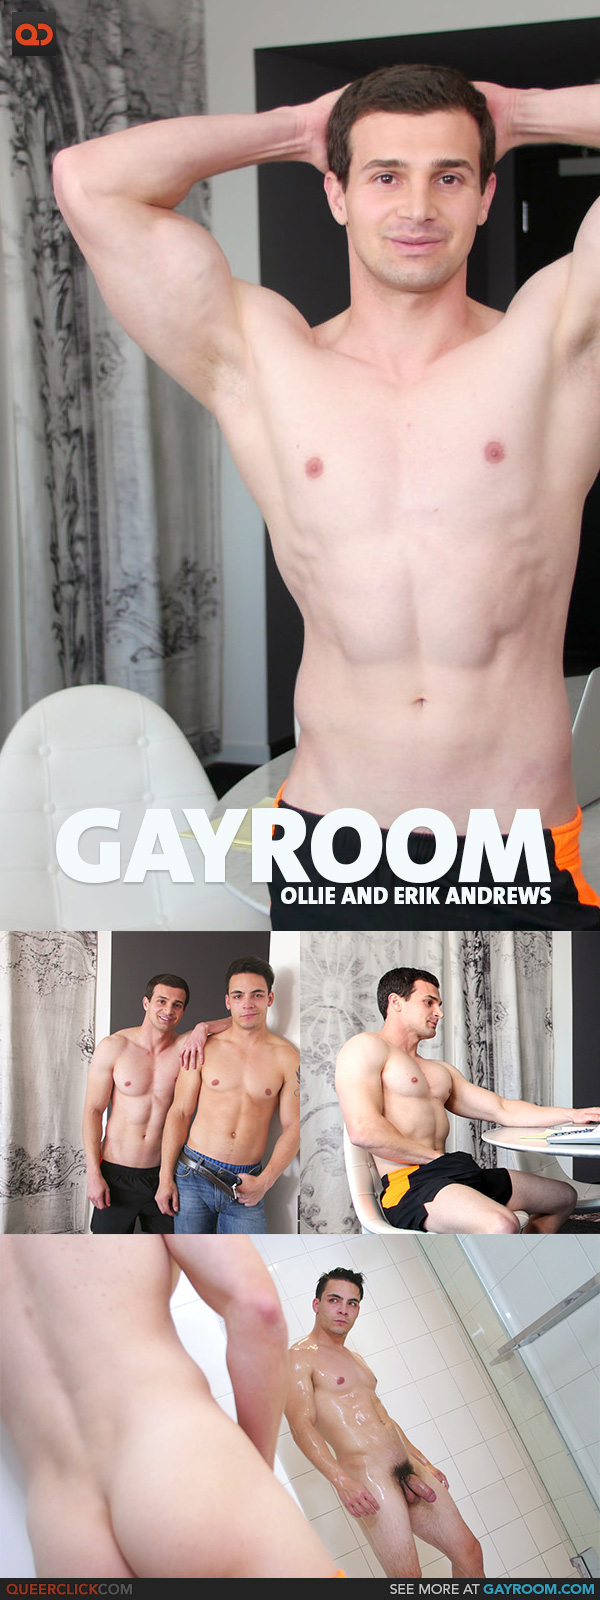 GayRoom: Ollie and Erik Andrews